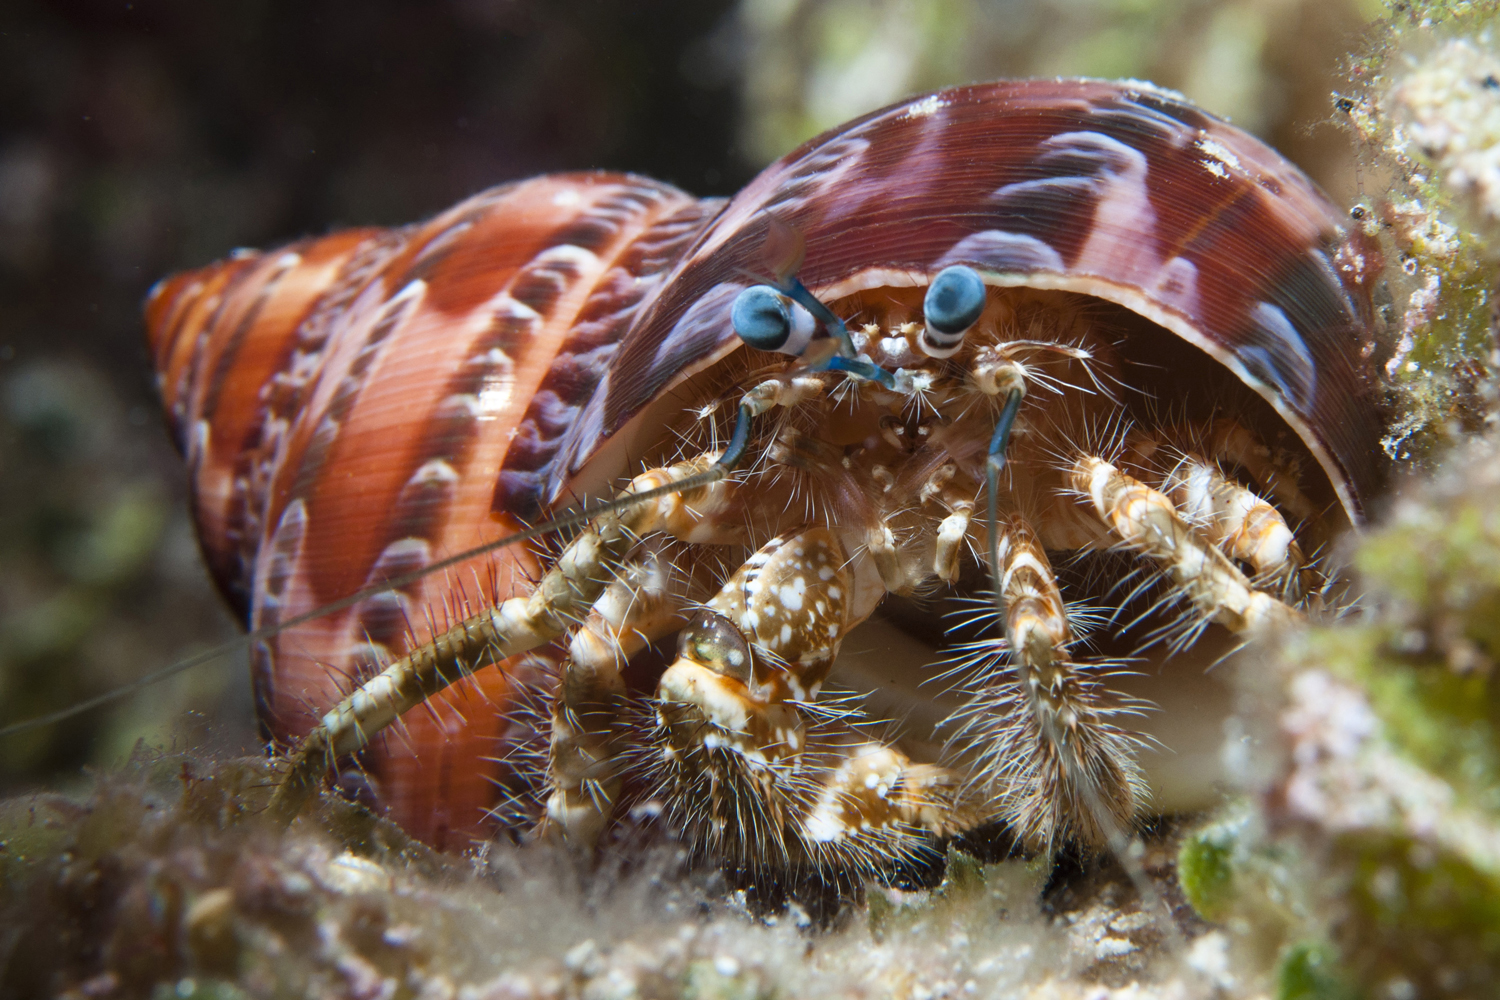 Hairy-legged Hermit Crab found during a night dive at 8m depth.